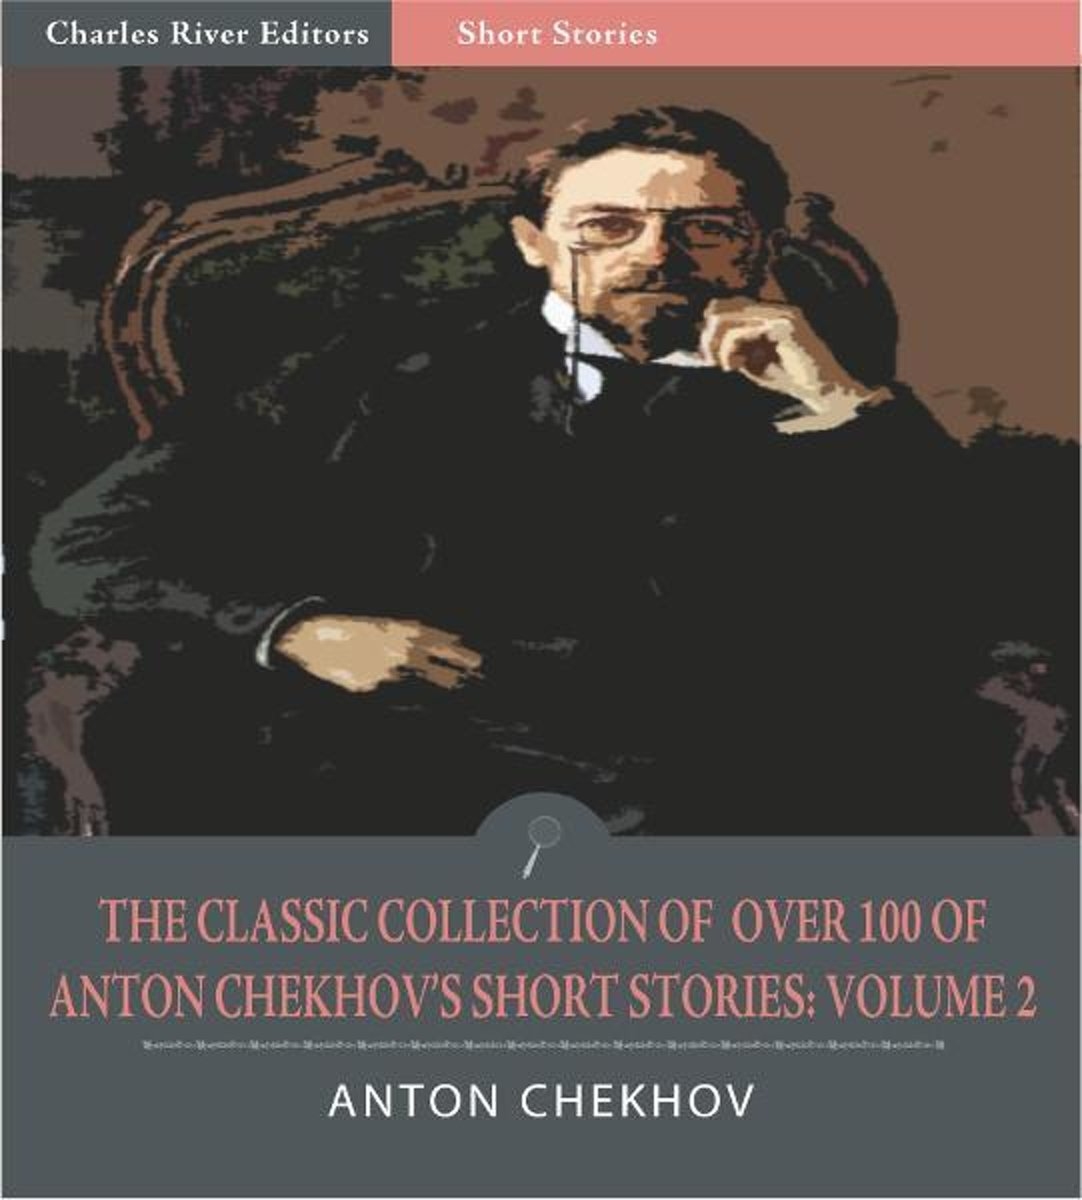 The Classic Collection of Over 100 of Anton Chekhovs Short Stories: Volume II (102 Short Stories) (Illustrated Edition)